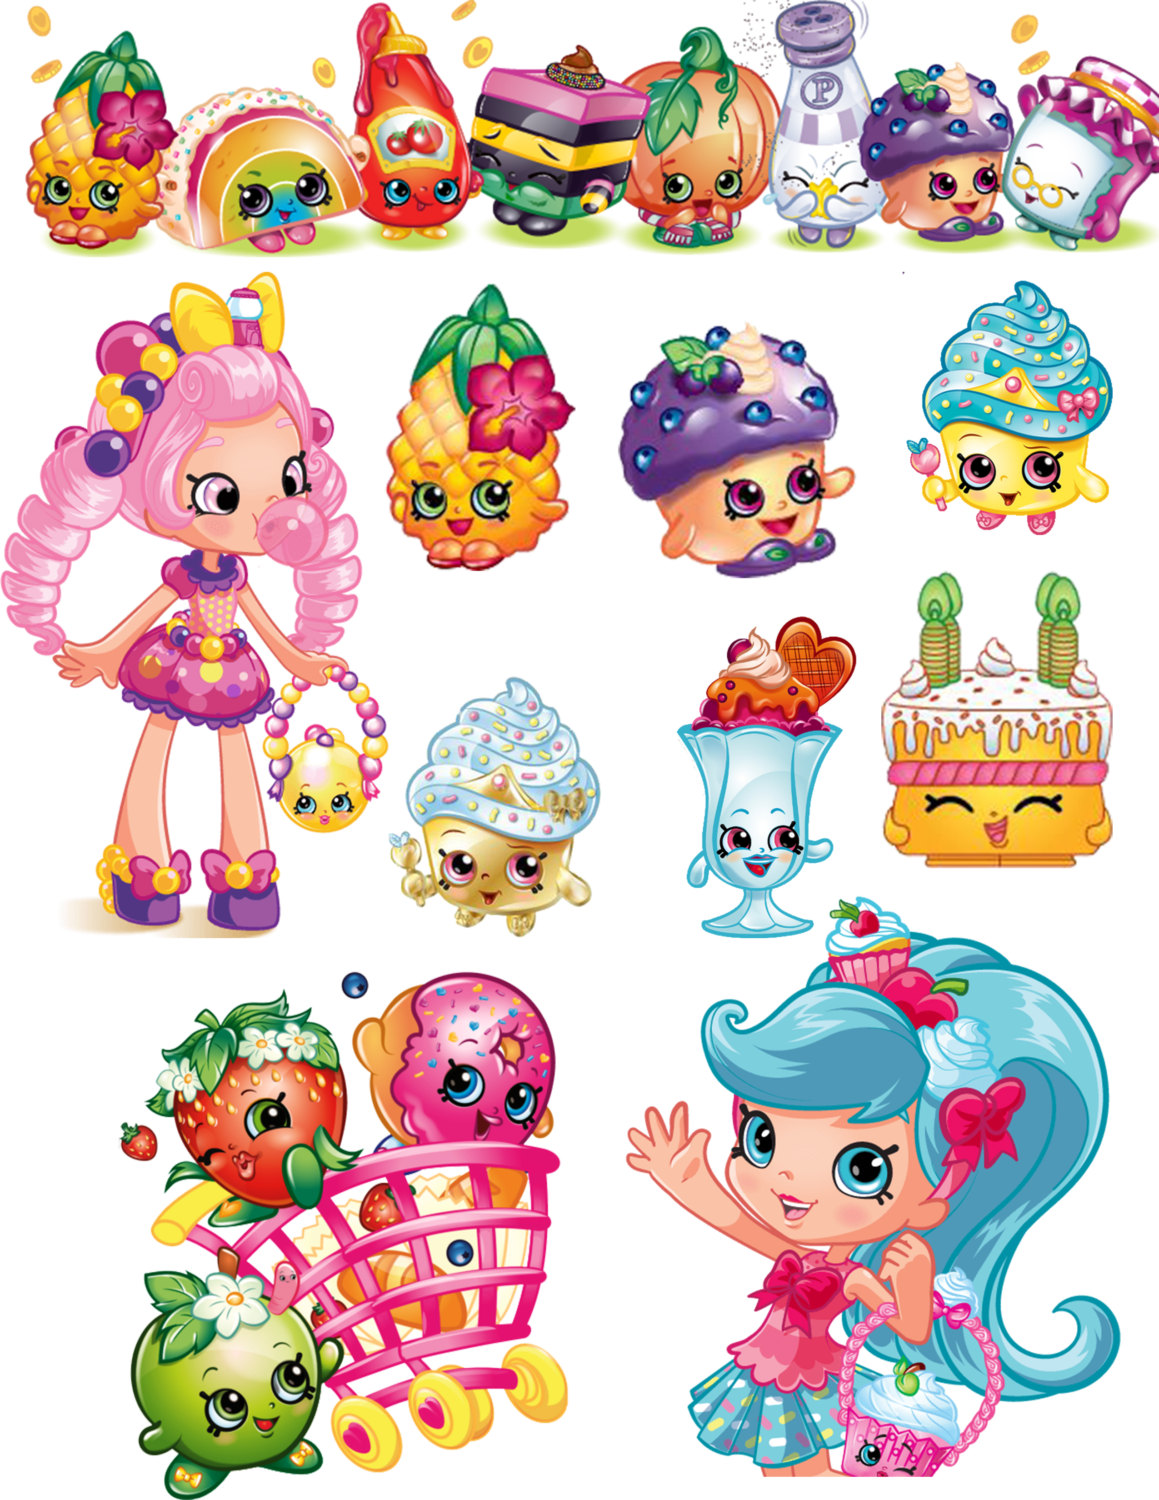 Shopkins characters wobbles clipart graphic royalty free stock Shopkins characters wobbles clipart - ClipartFest graphic royalty free stock